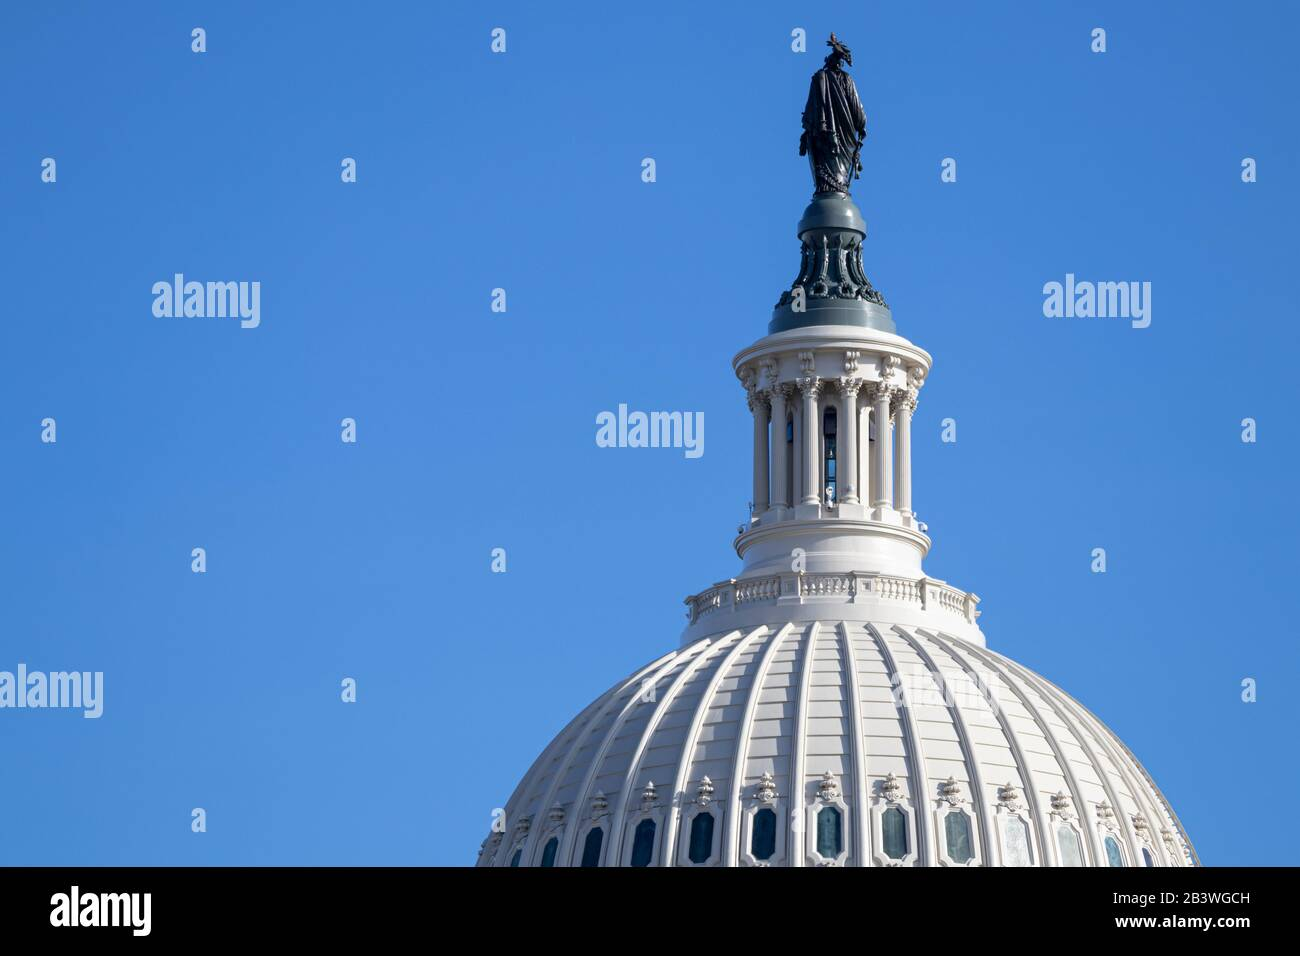 Closeup of US Capital Building Dome with the back of the bronze Statue of Freedom seen on clear day. Stock Photo